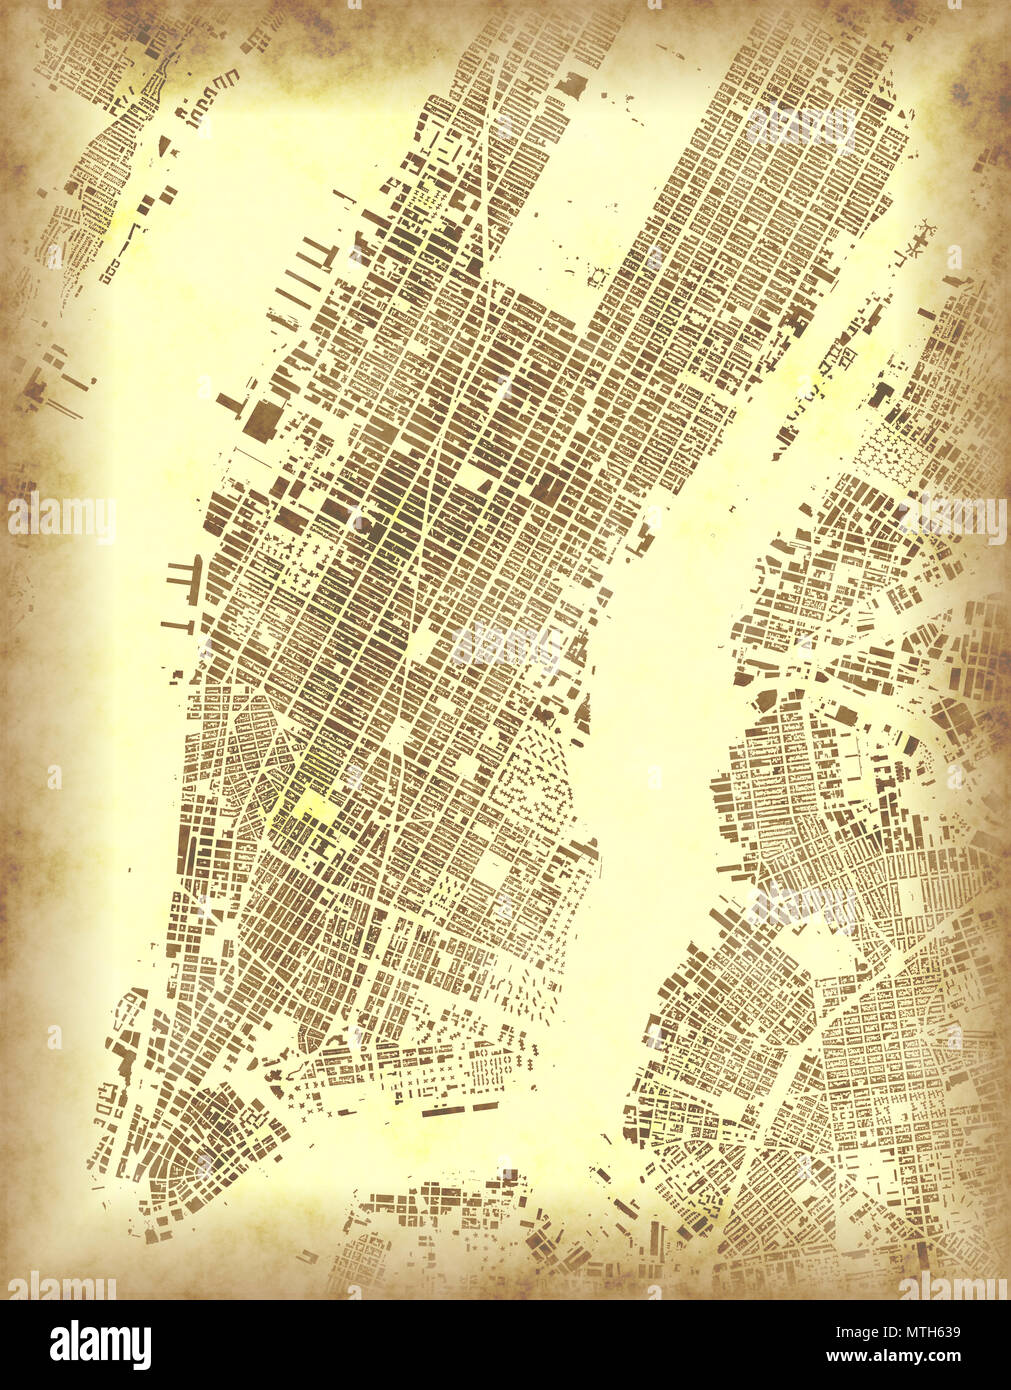 Map Of New York Satellite View United States Neighborhoods With